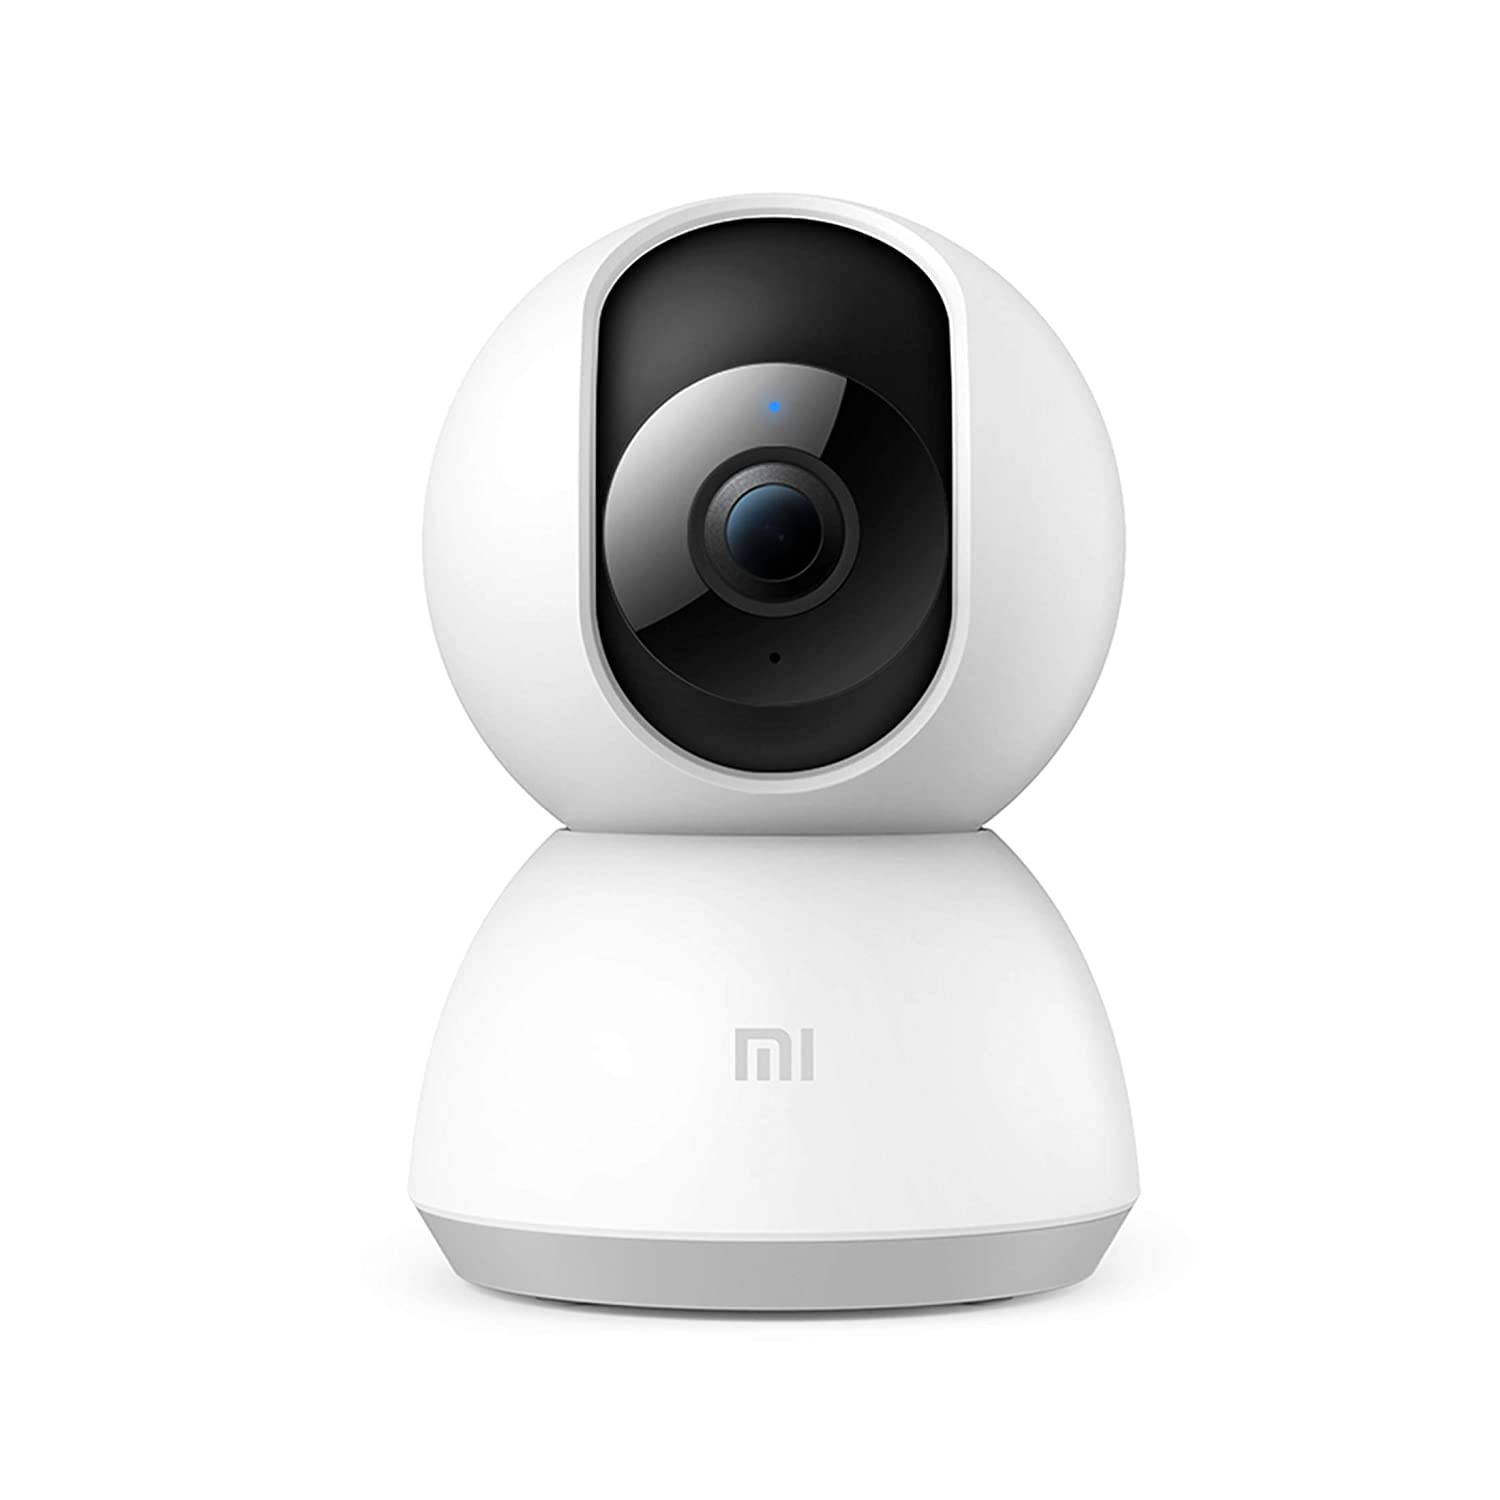 MI Full HD WiFi 1080p 360° Viewing Area with Intruder Alert, Night Vision, Two-Way Audio Inverted Installation Smart Security Camera (White)